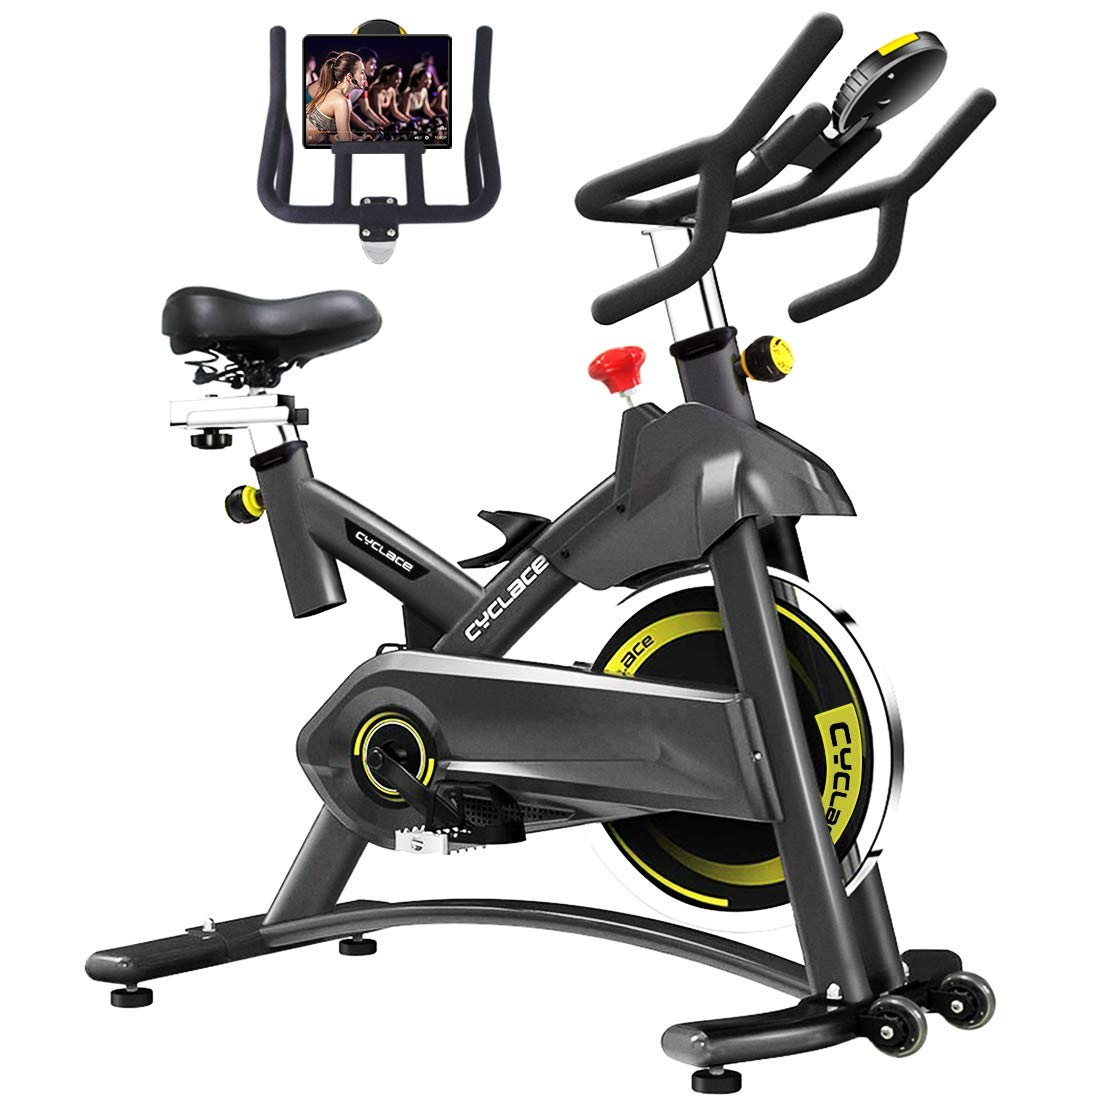 Cyclace Indoor Exercise Bike Stationary Cycling Bike with Ipad Holder for Home Workout by Cyclace